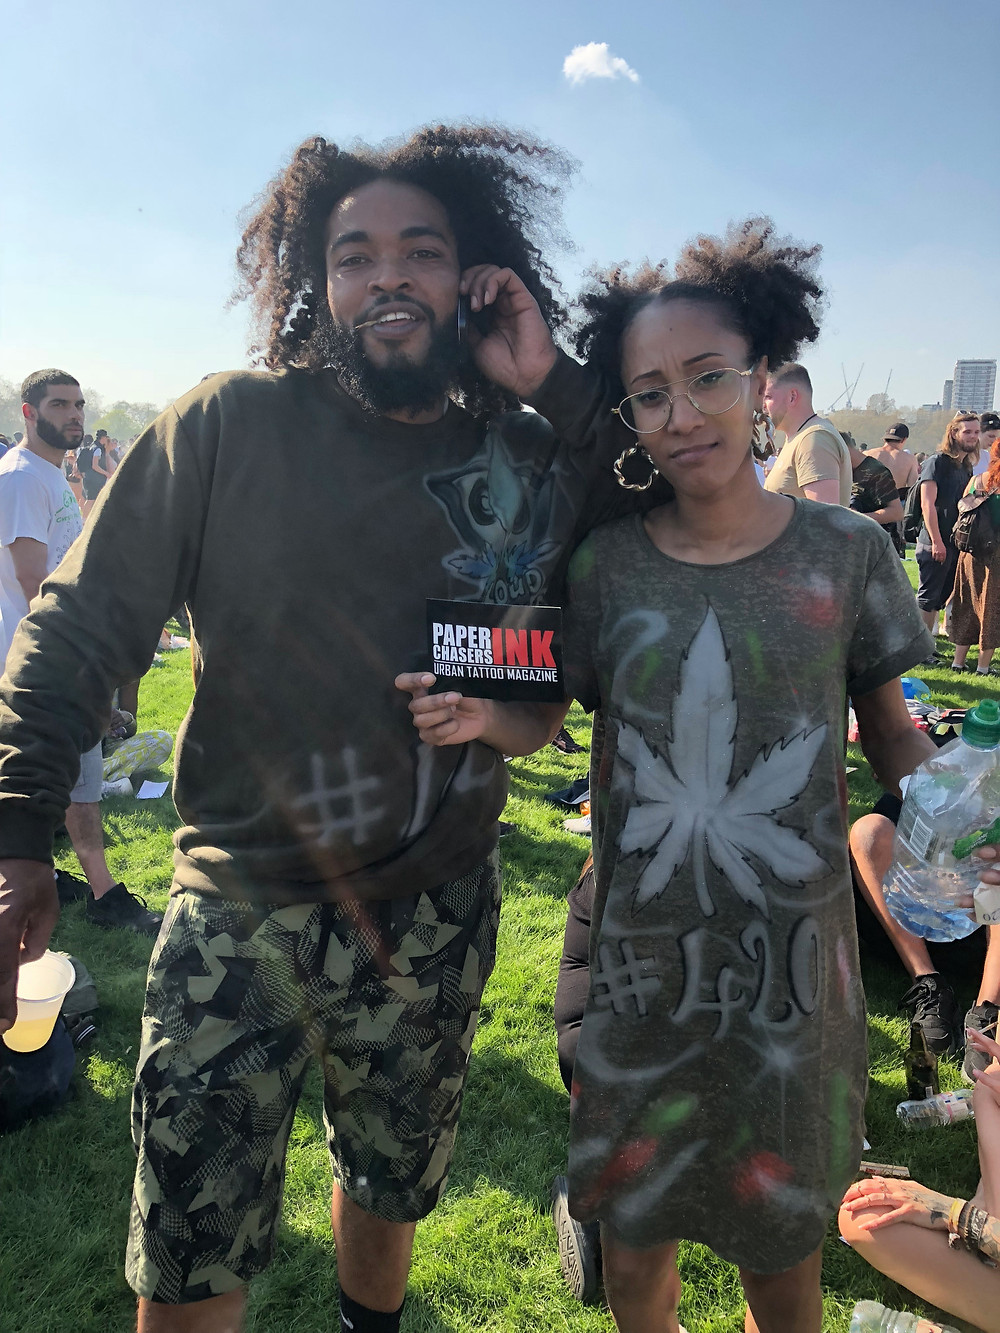 420 hyde park 2018, paperchasers inkIMG_0151